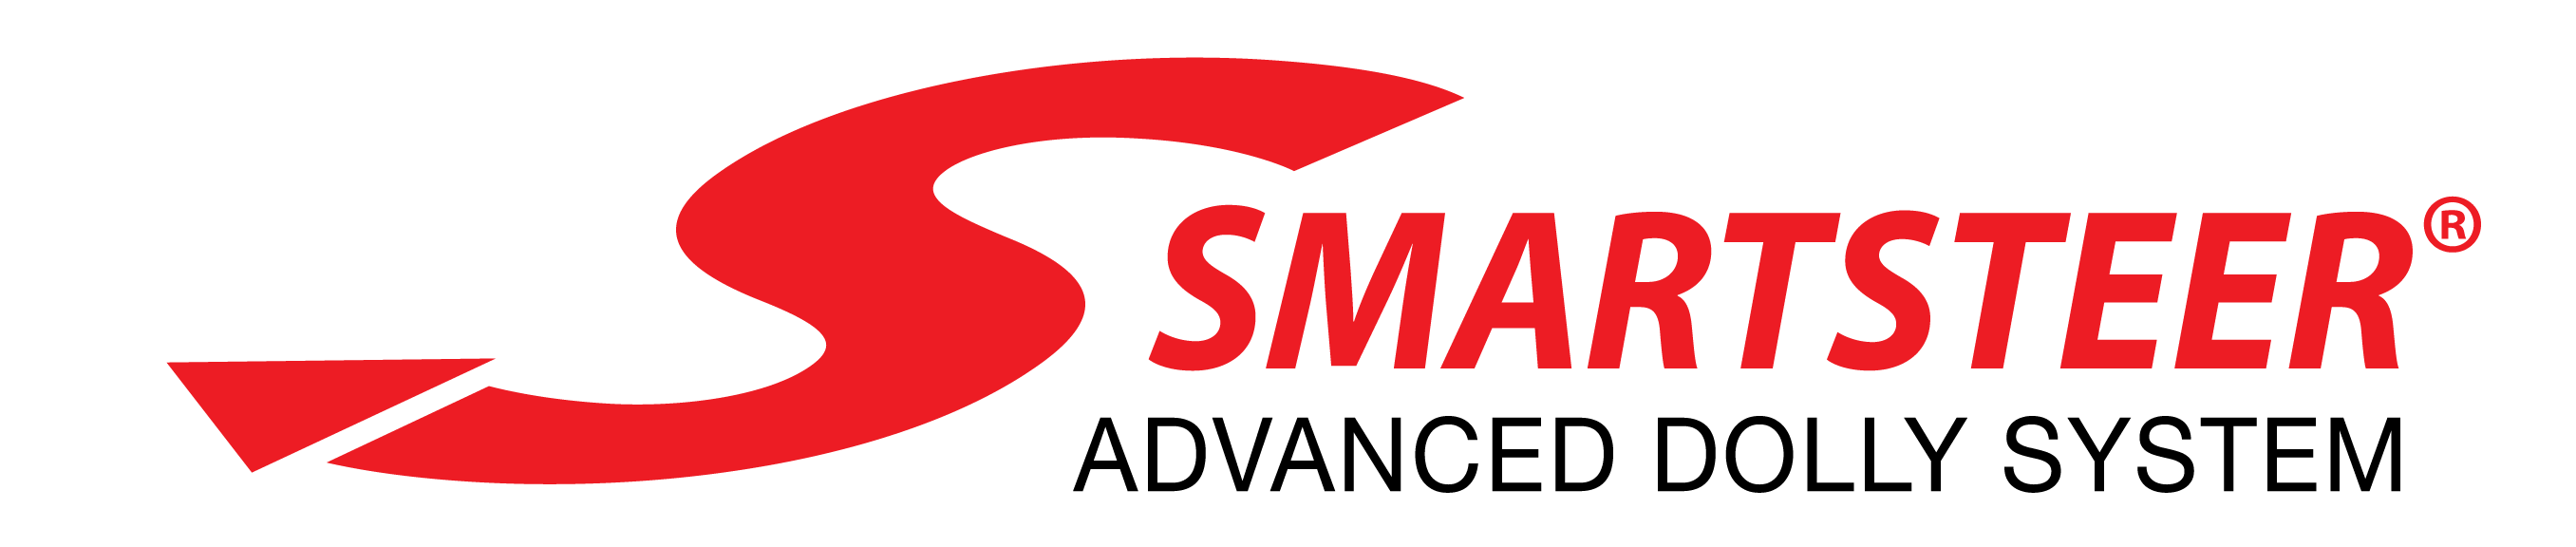 SMARTSTEERtm Advanced Dolly System